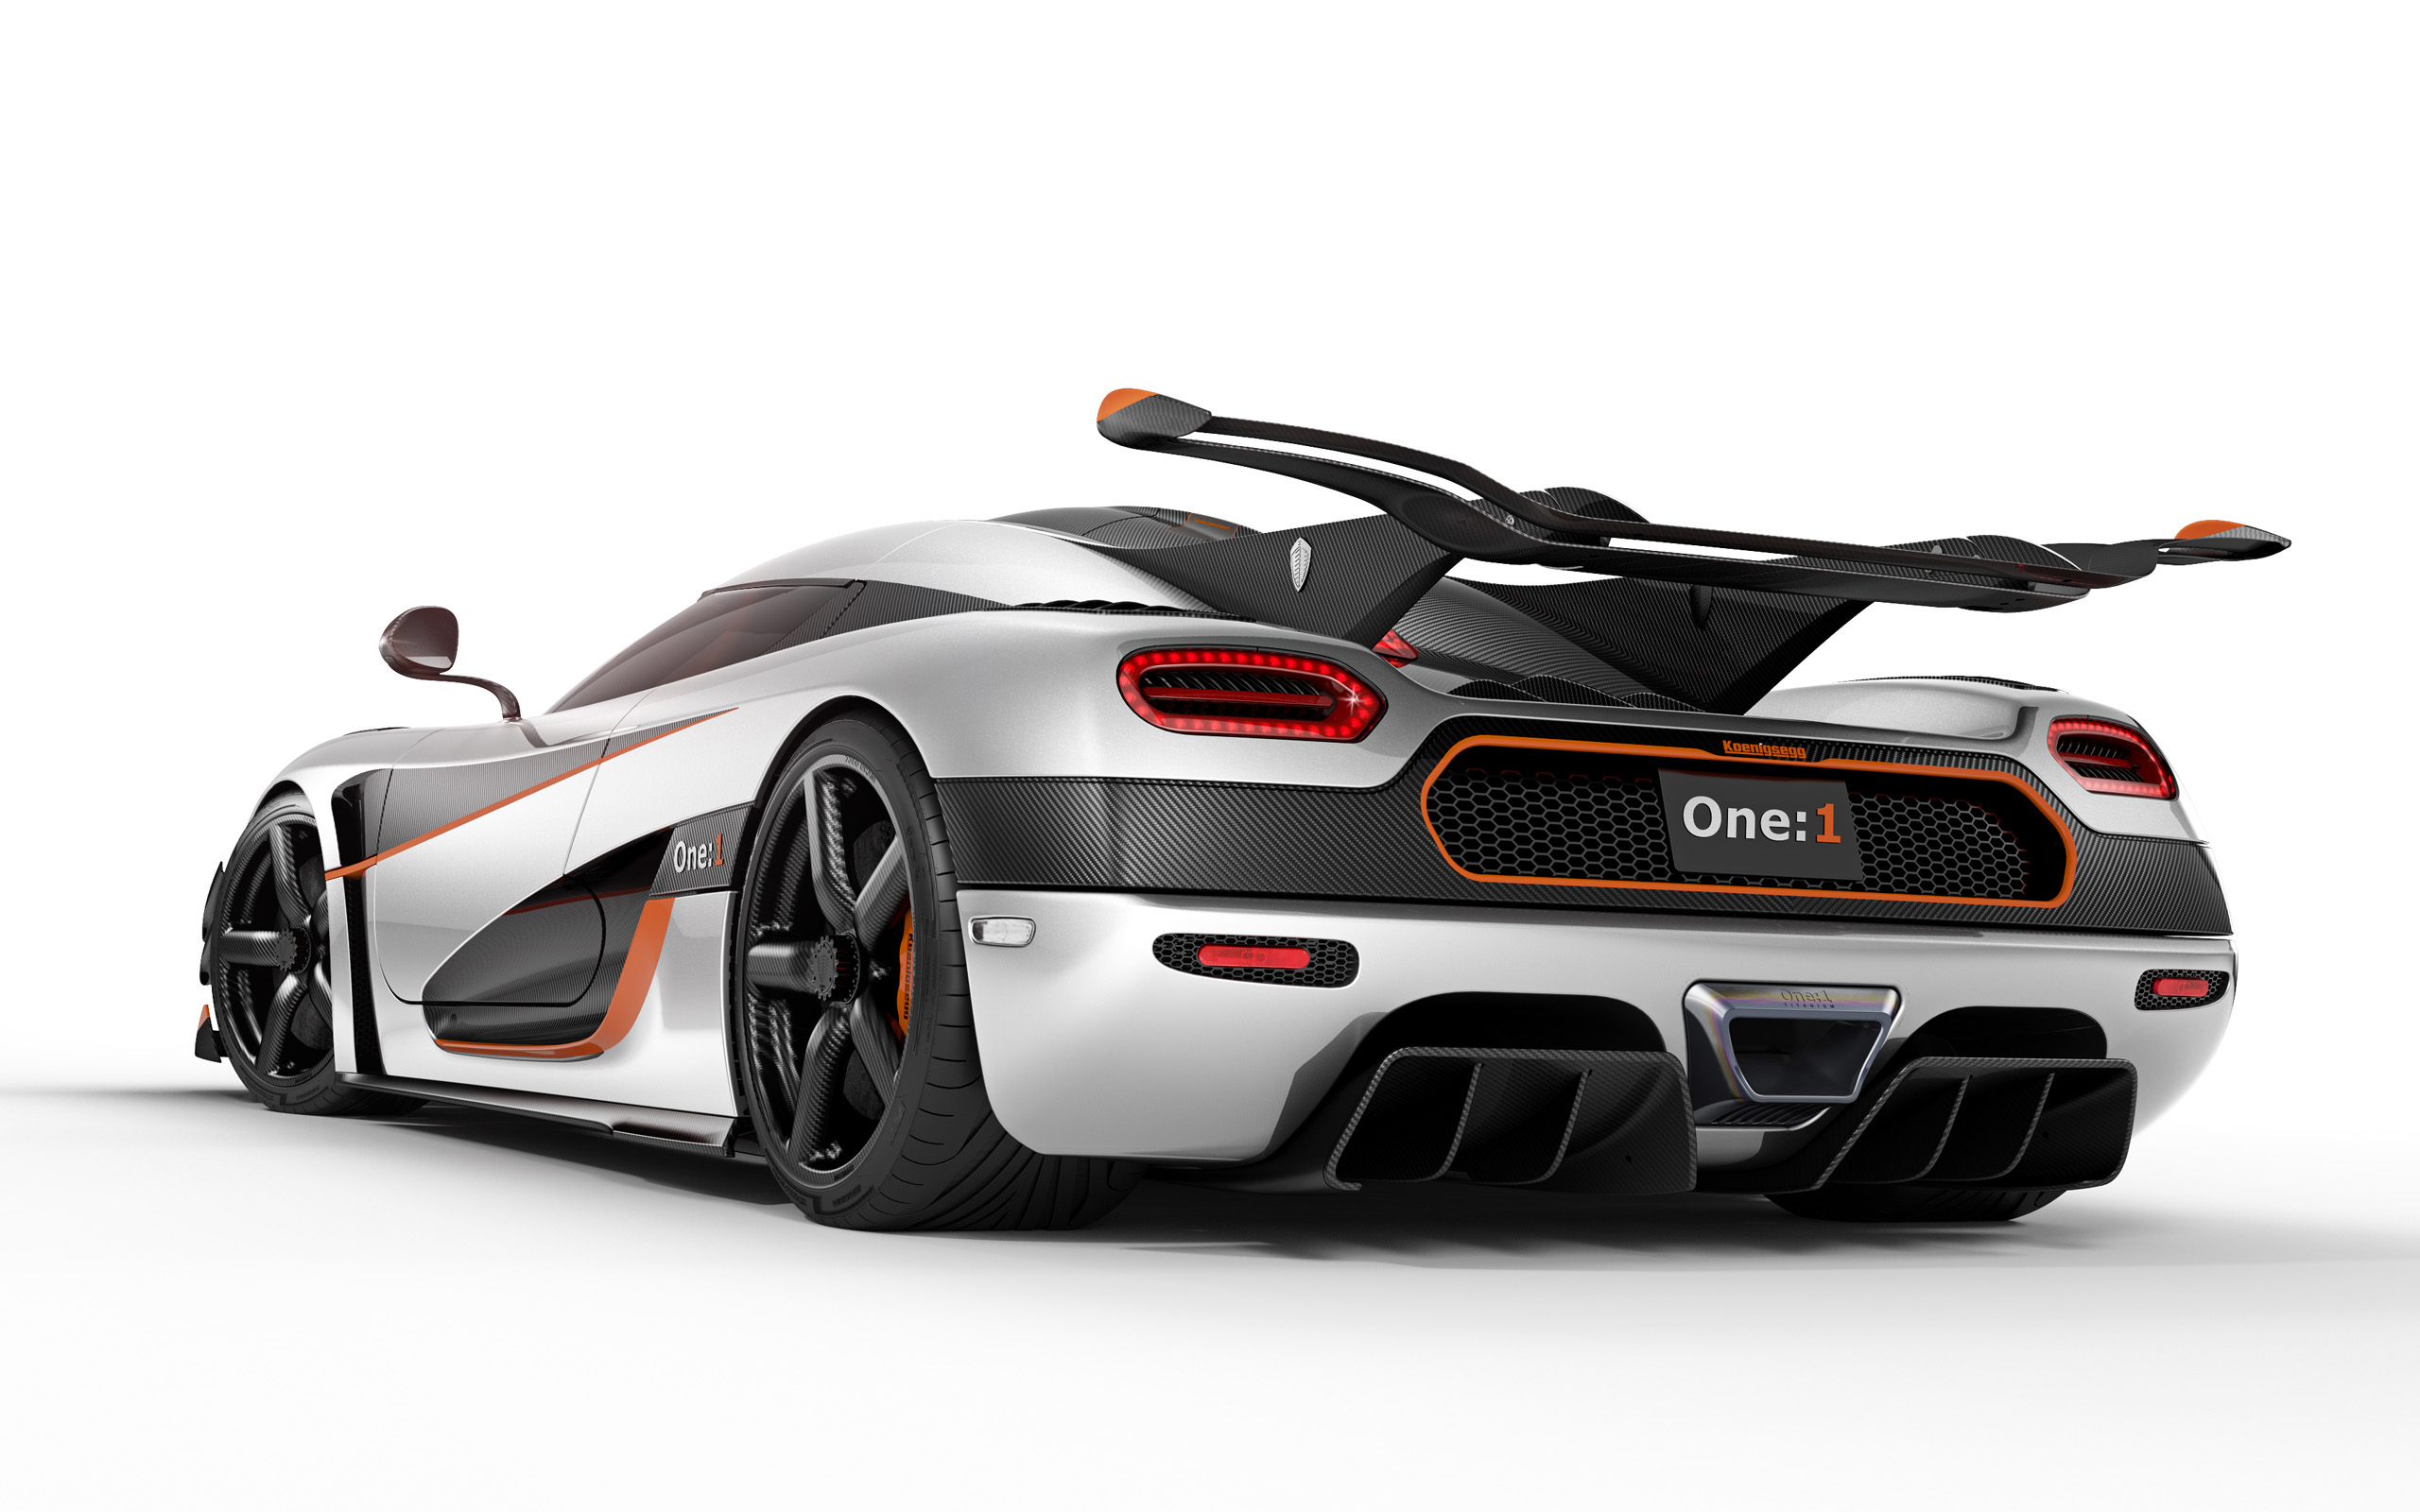 2014 Koenigsegg Agera One 1 2 Wallpaper HD Car Wallpapers 2560x1600